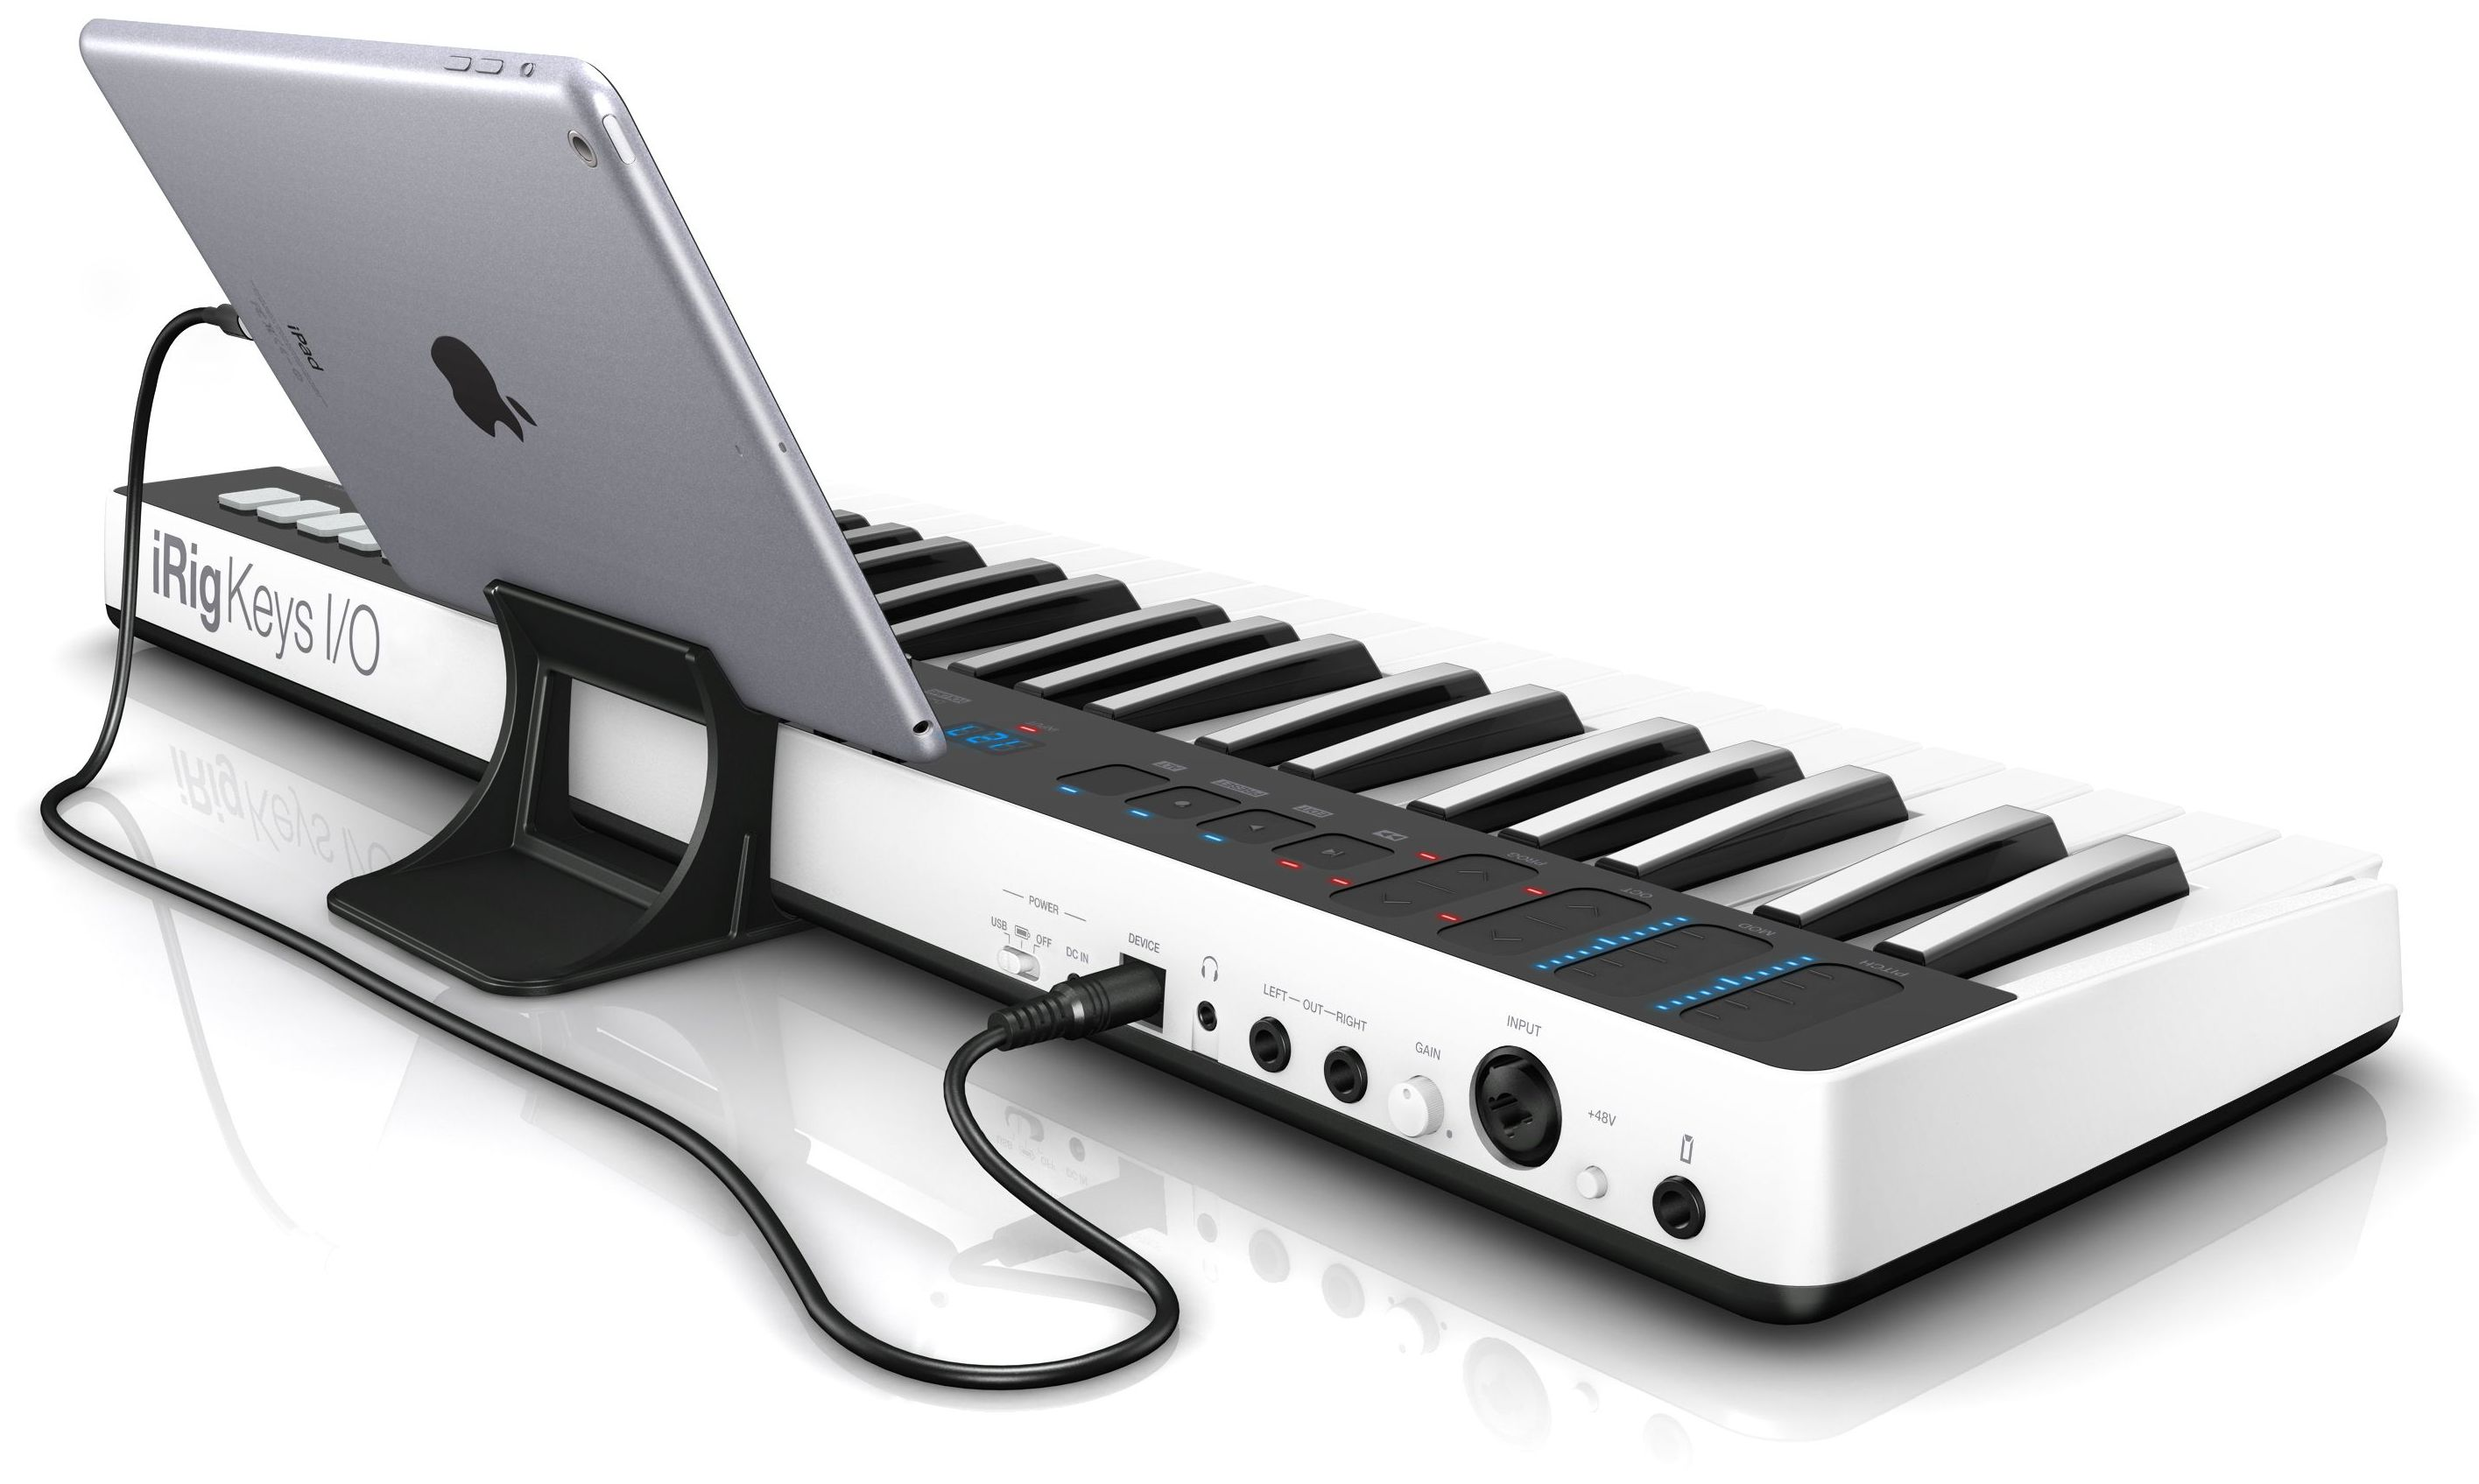 07_iRigKeys_49_IO_ipad_stand_back.jpg